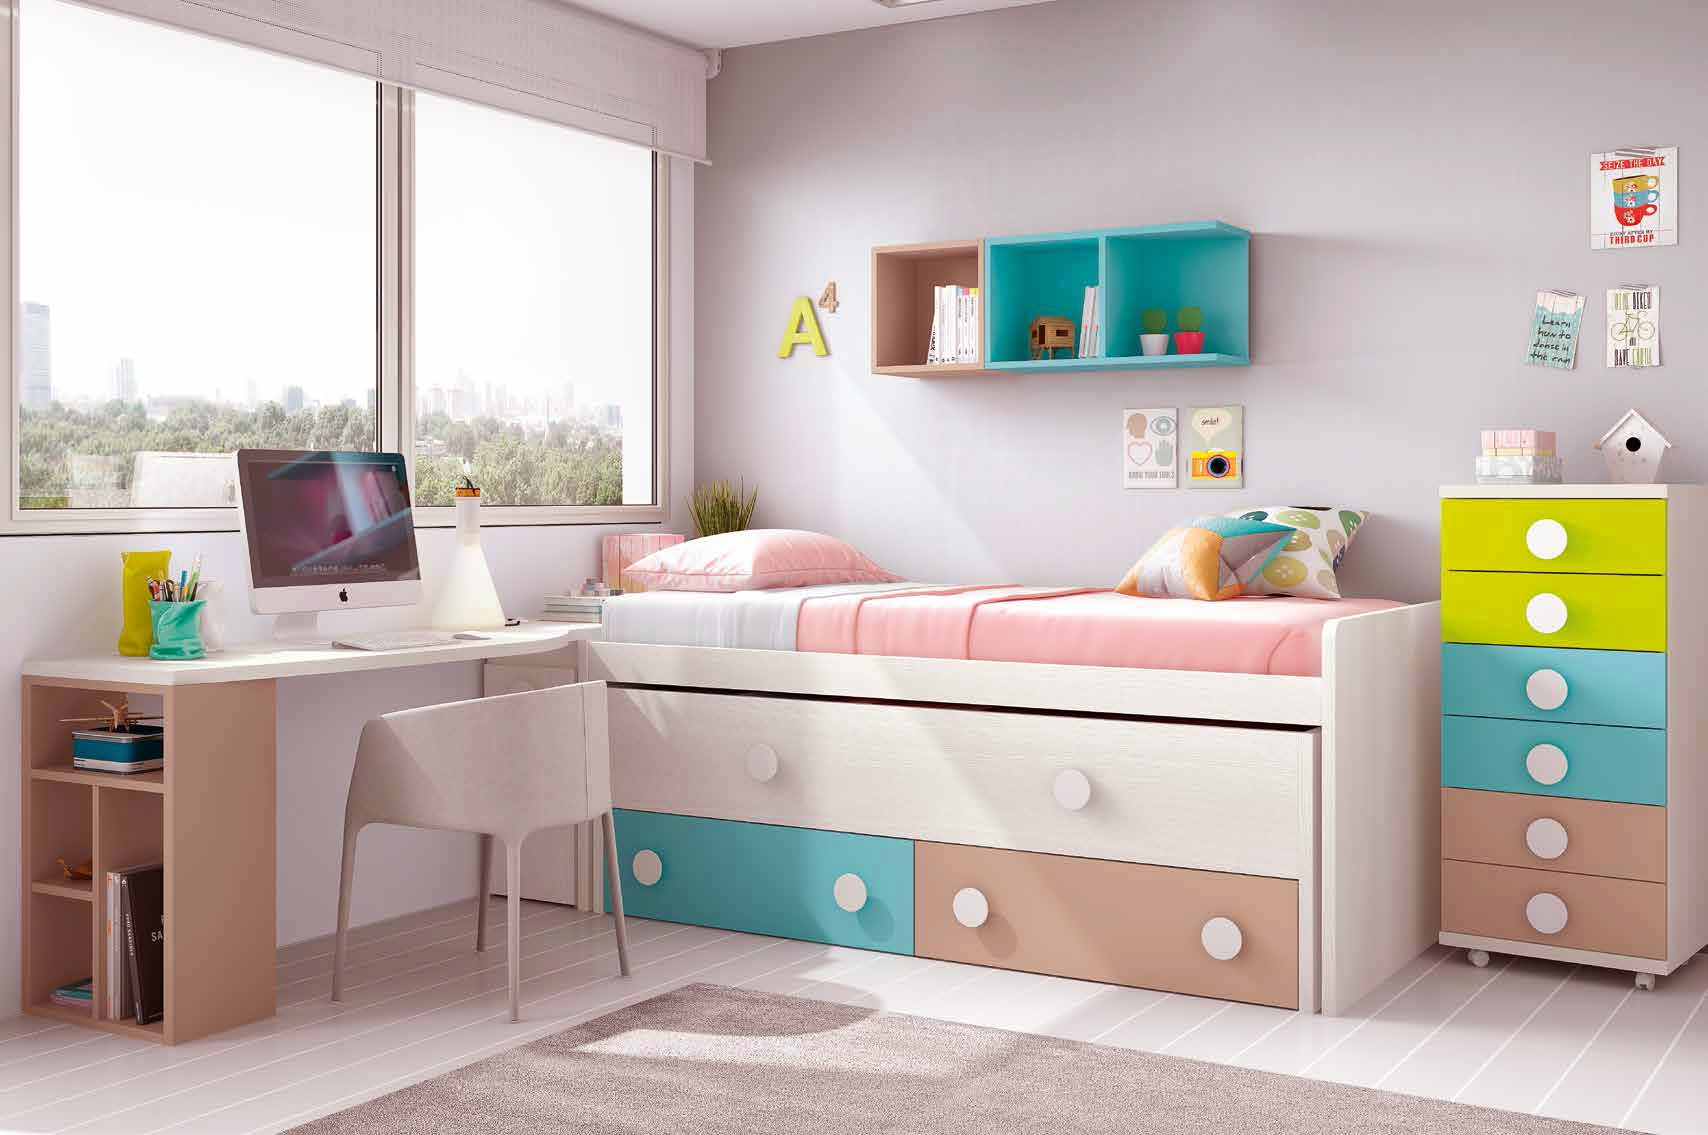 chambre ado design avec lit sur lev color et fun glicerio so nuit. Black Bedroom Furniture Sets. Home Design Ideas